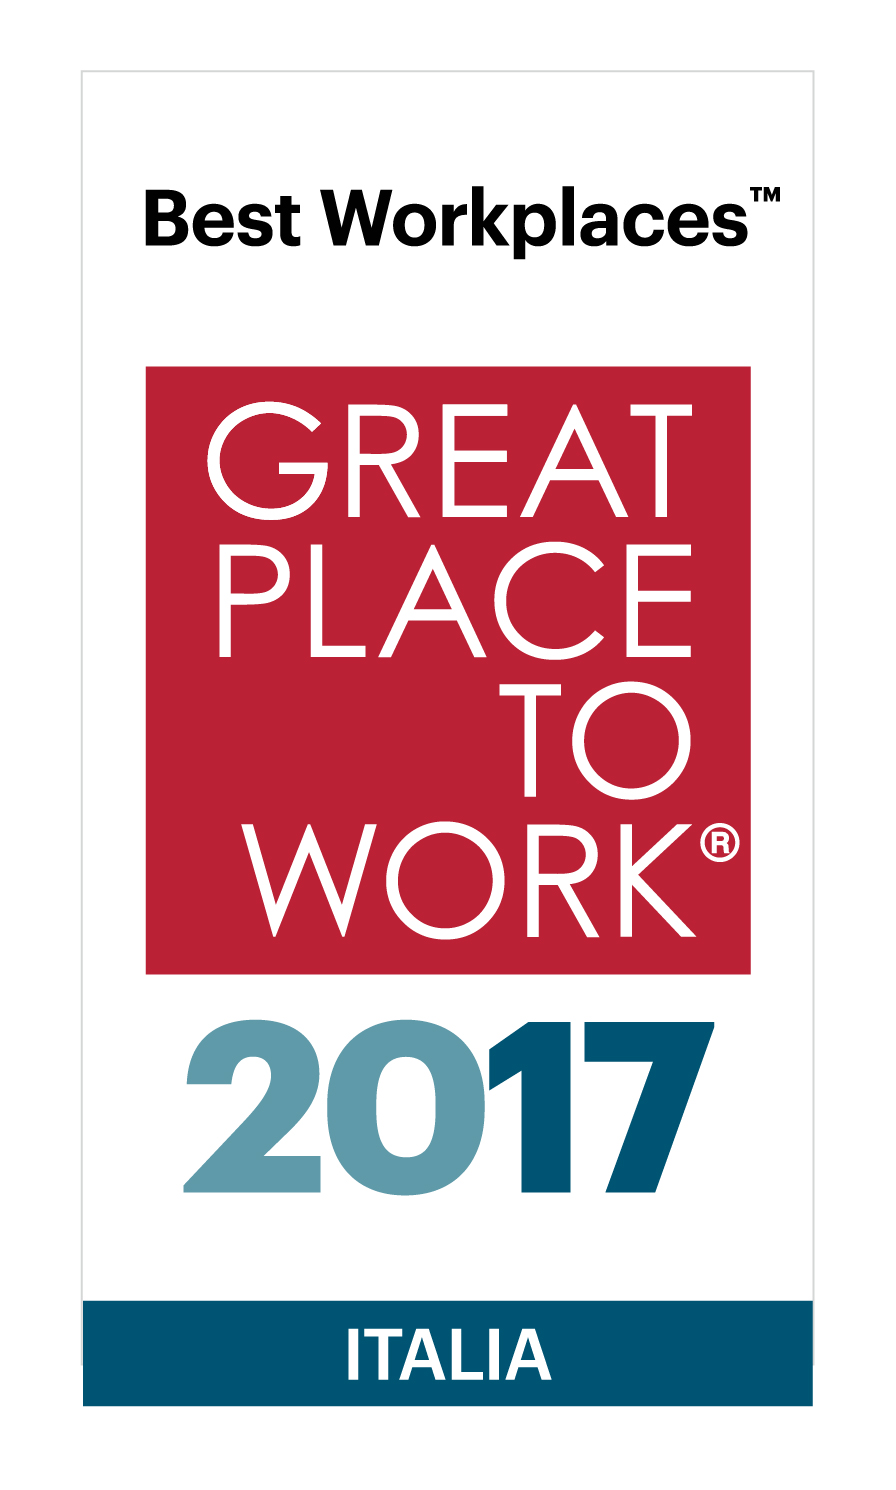 Italia BestWorkplaces 2017